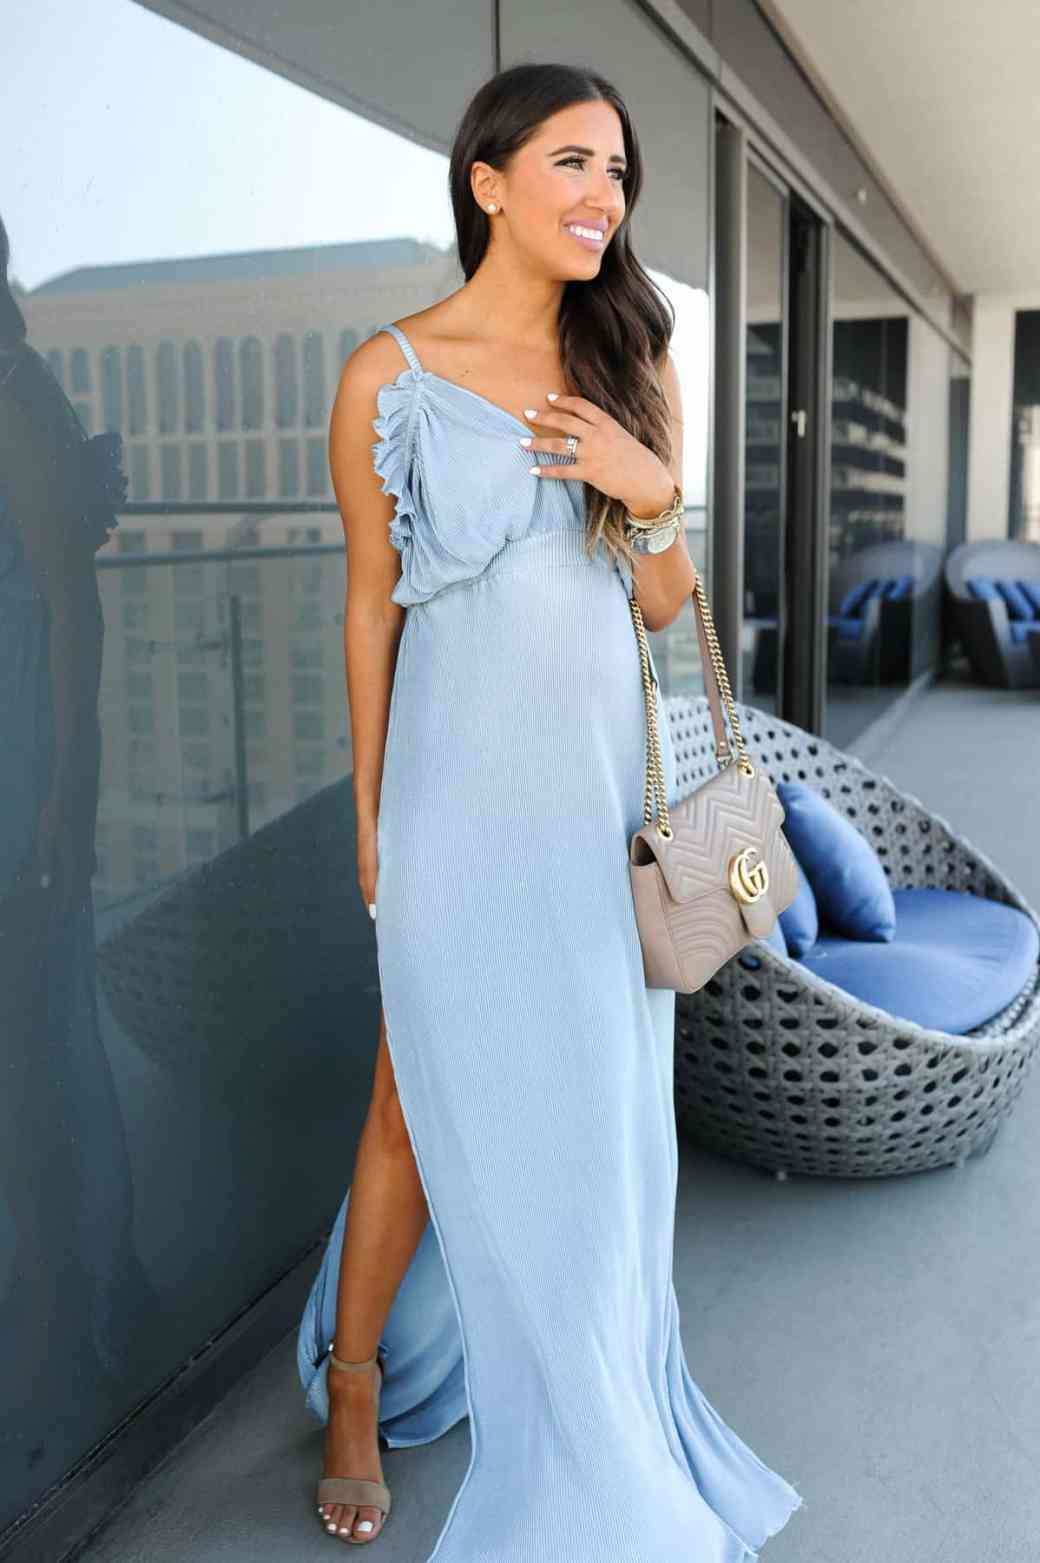 dress up buttercup 5 of 8 - Pleated Blue Maxi